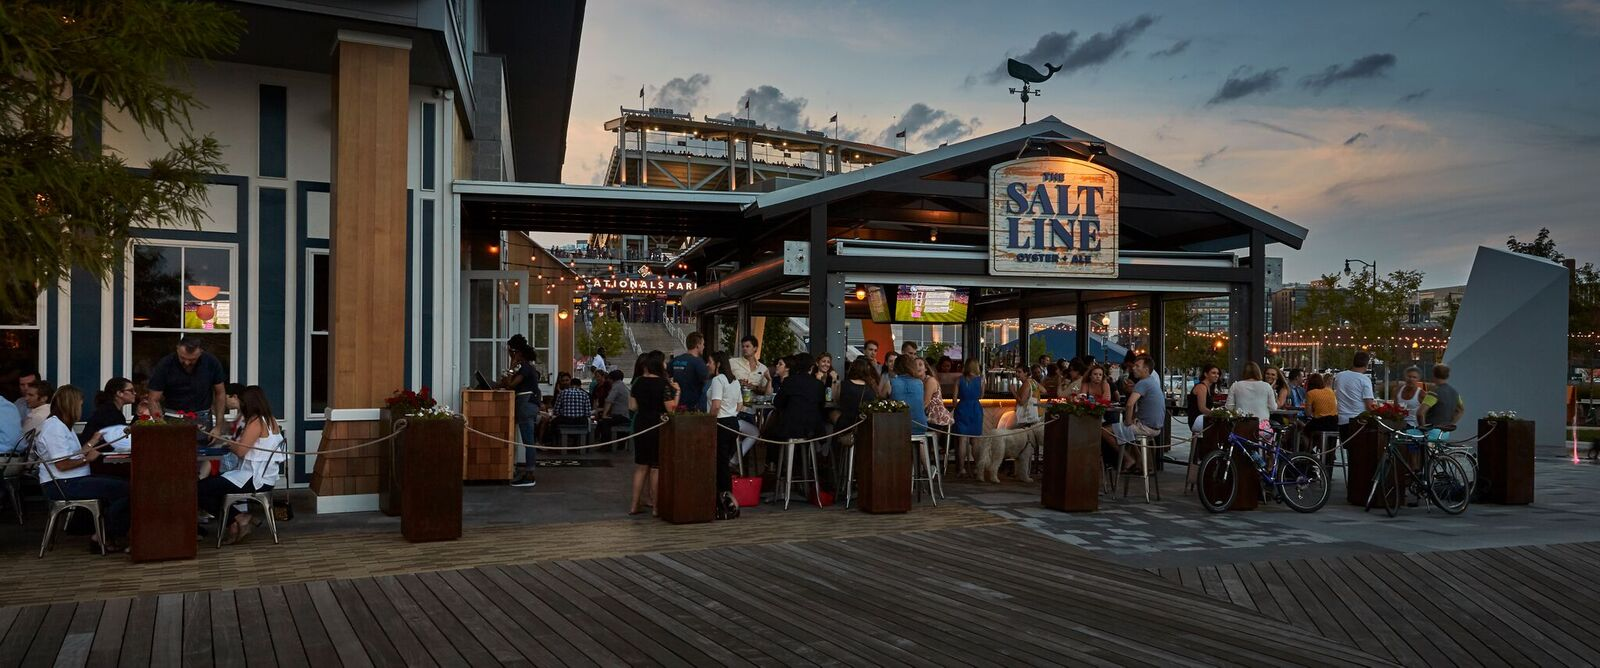 This Navy Yard spot is a favorite spot for locals to grab a drink and stellar seafood and they've just unveiled their extended lounge. The waterfront patio is perfect for pregaming Nats games or just slurping down oysters in the sun.  (Image: Greg Powers)